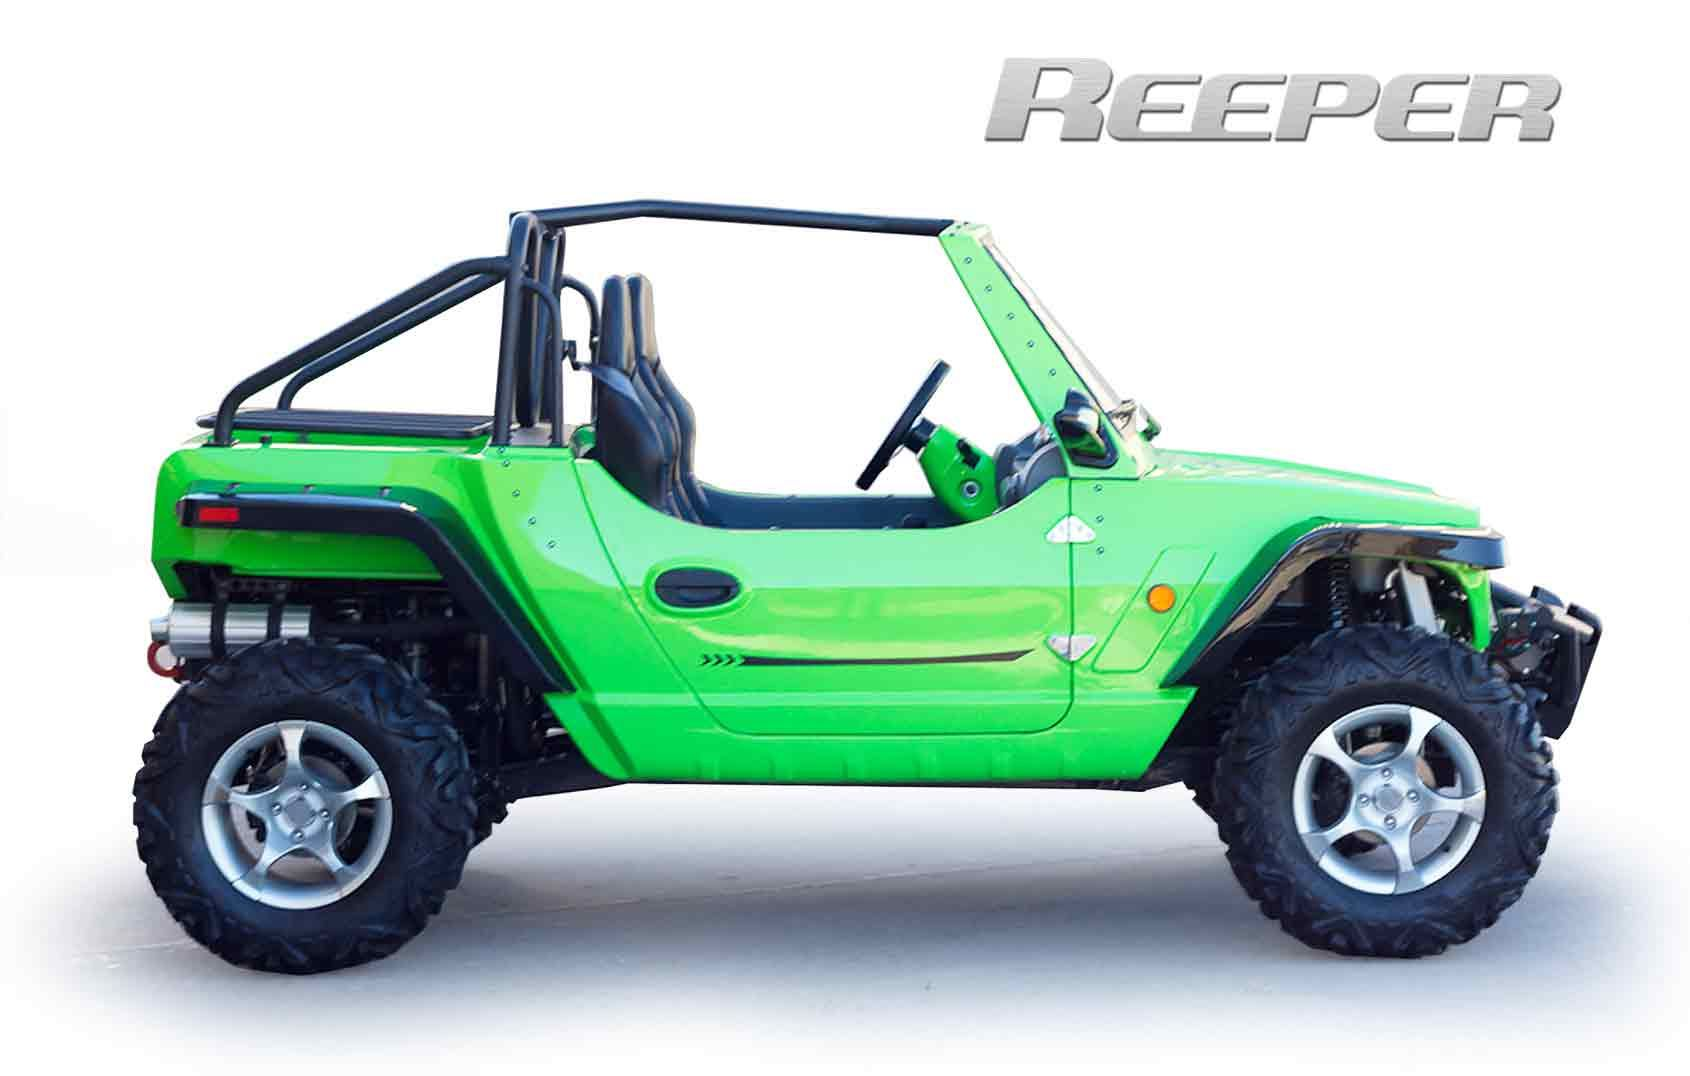 Reeper Atv Quad Street Legal Utv And Oreion Off Road Buggy